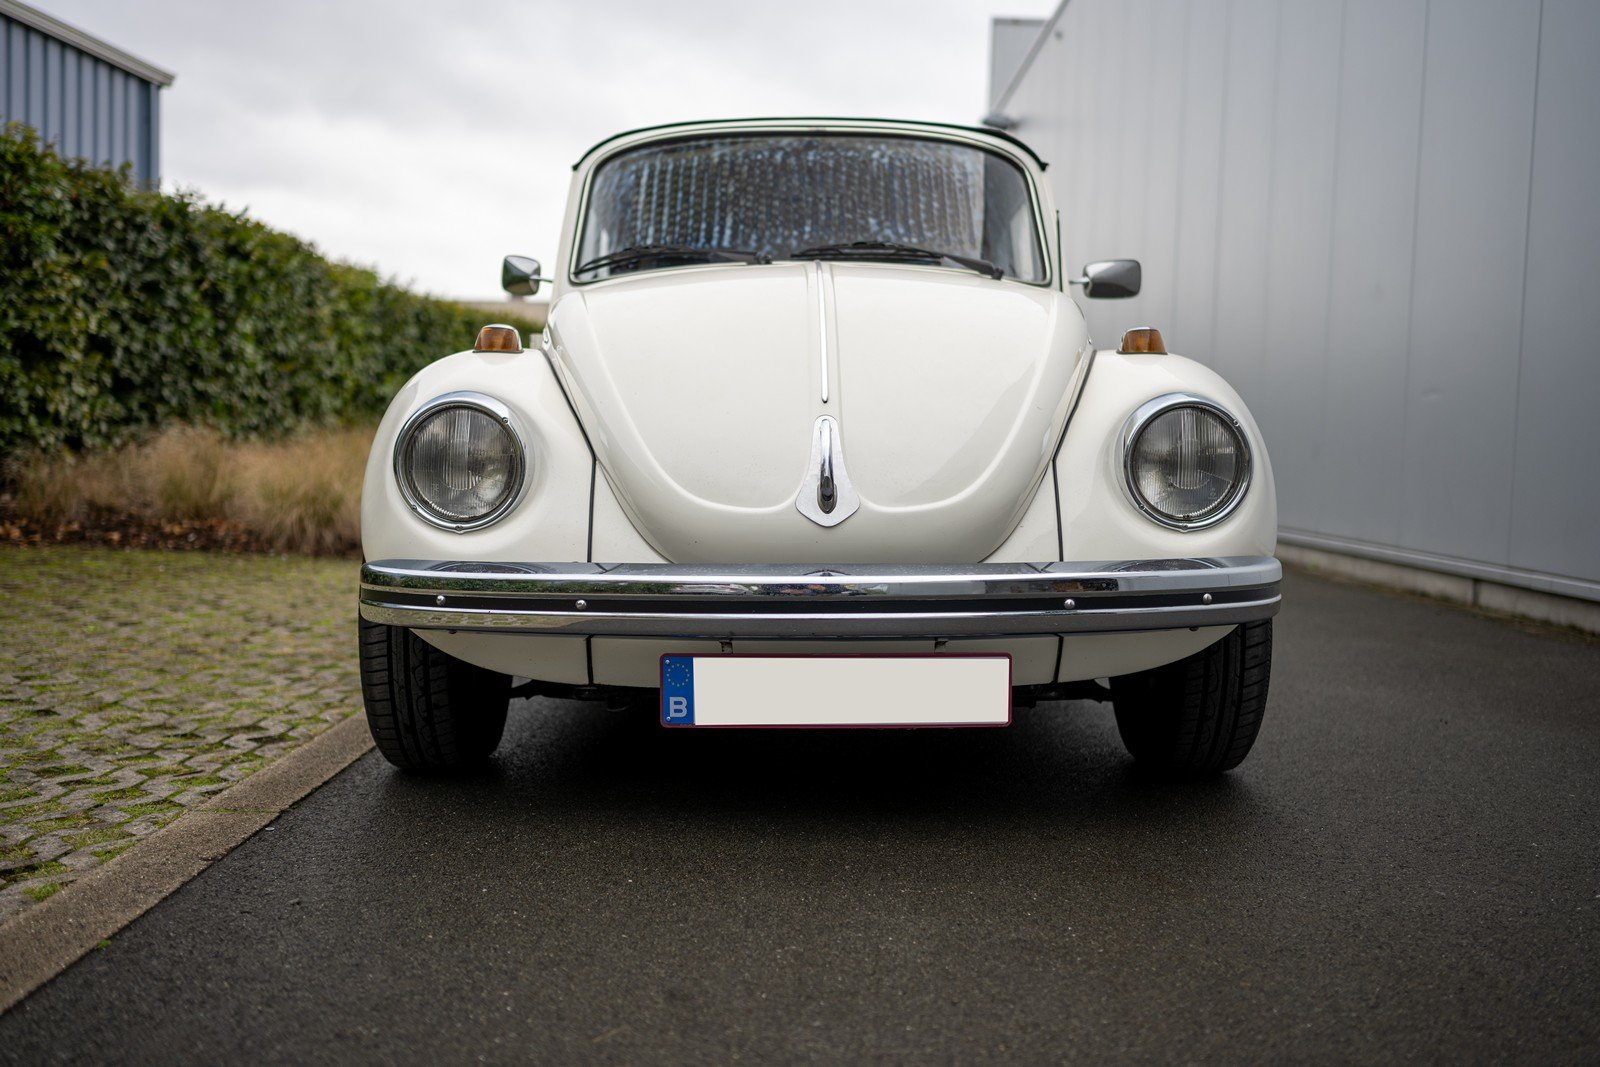 1973 Volkswagen Beetle Type 1303 Cabriolet For Sale (picture 7 of 39)